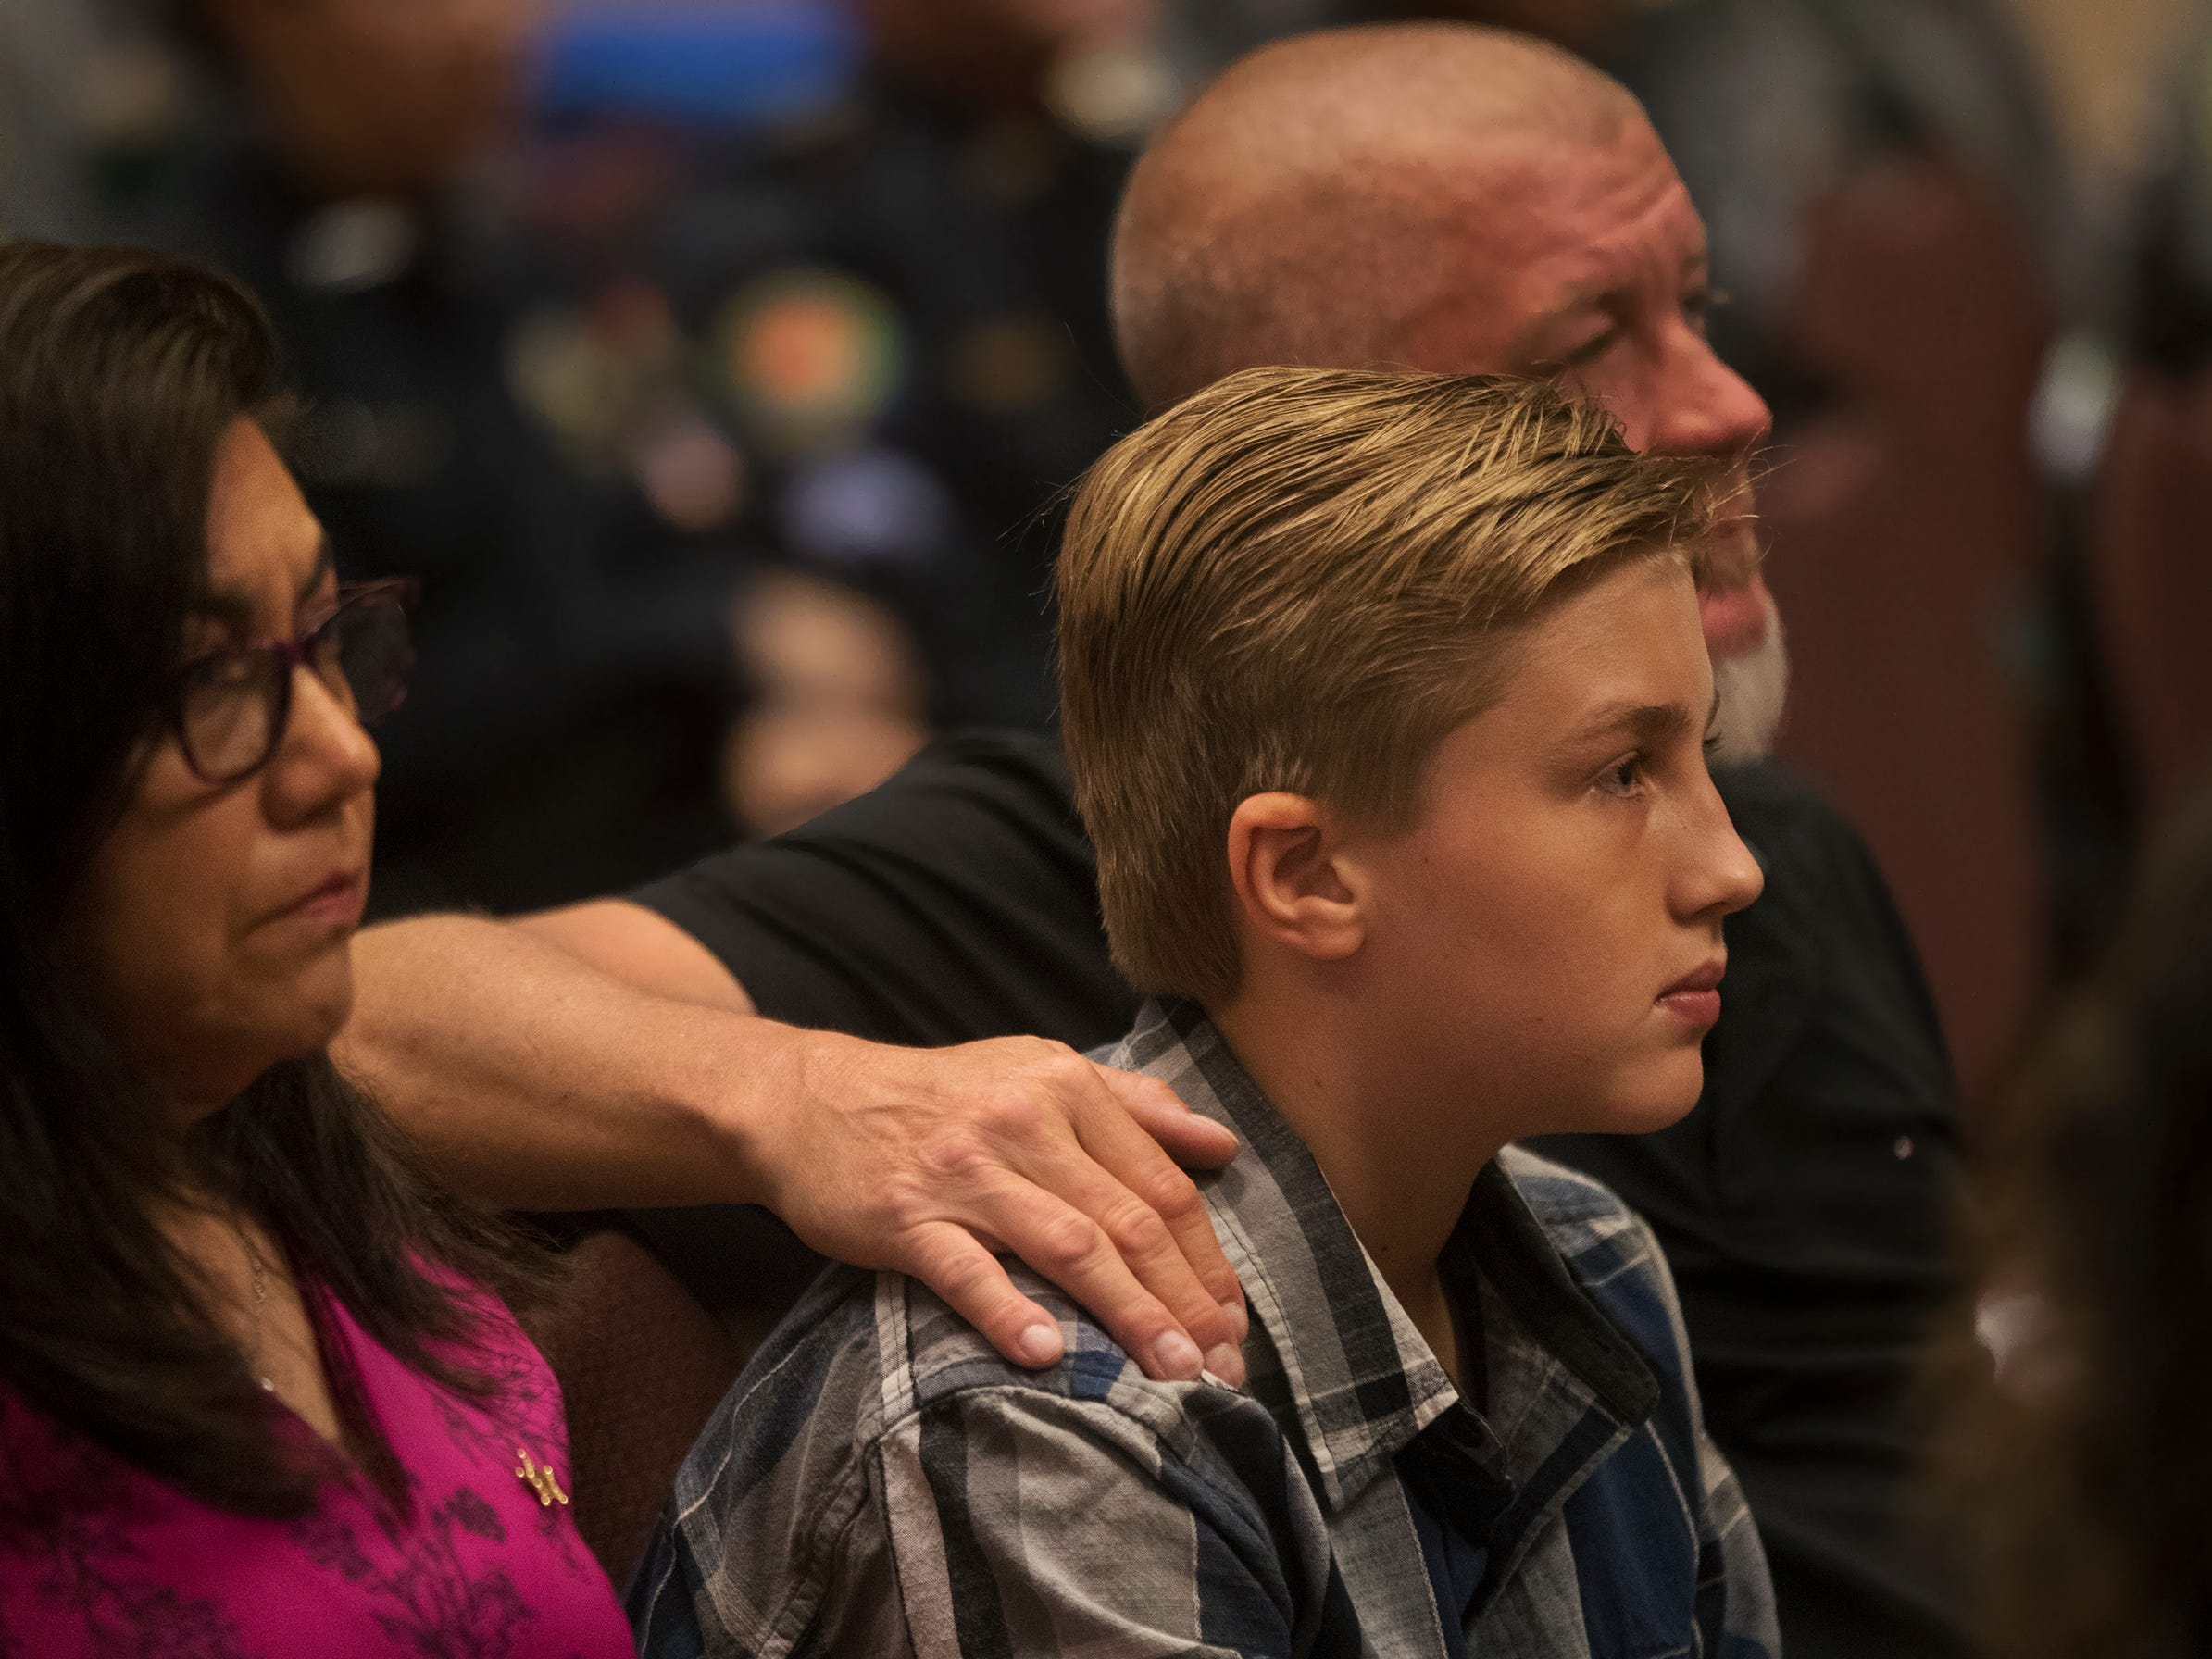 Zackary Gibbons, 13, is comforted by his father, Lindell Brian Gibbons, during a law enforcement memorial honoring Zackary's grandfather, Lindell J. Gibbons and other local officers killed in the line of duty on Wednesday at East Naples United Methodist Church. Thirteen officers have been killed in Collier County since 1928.